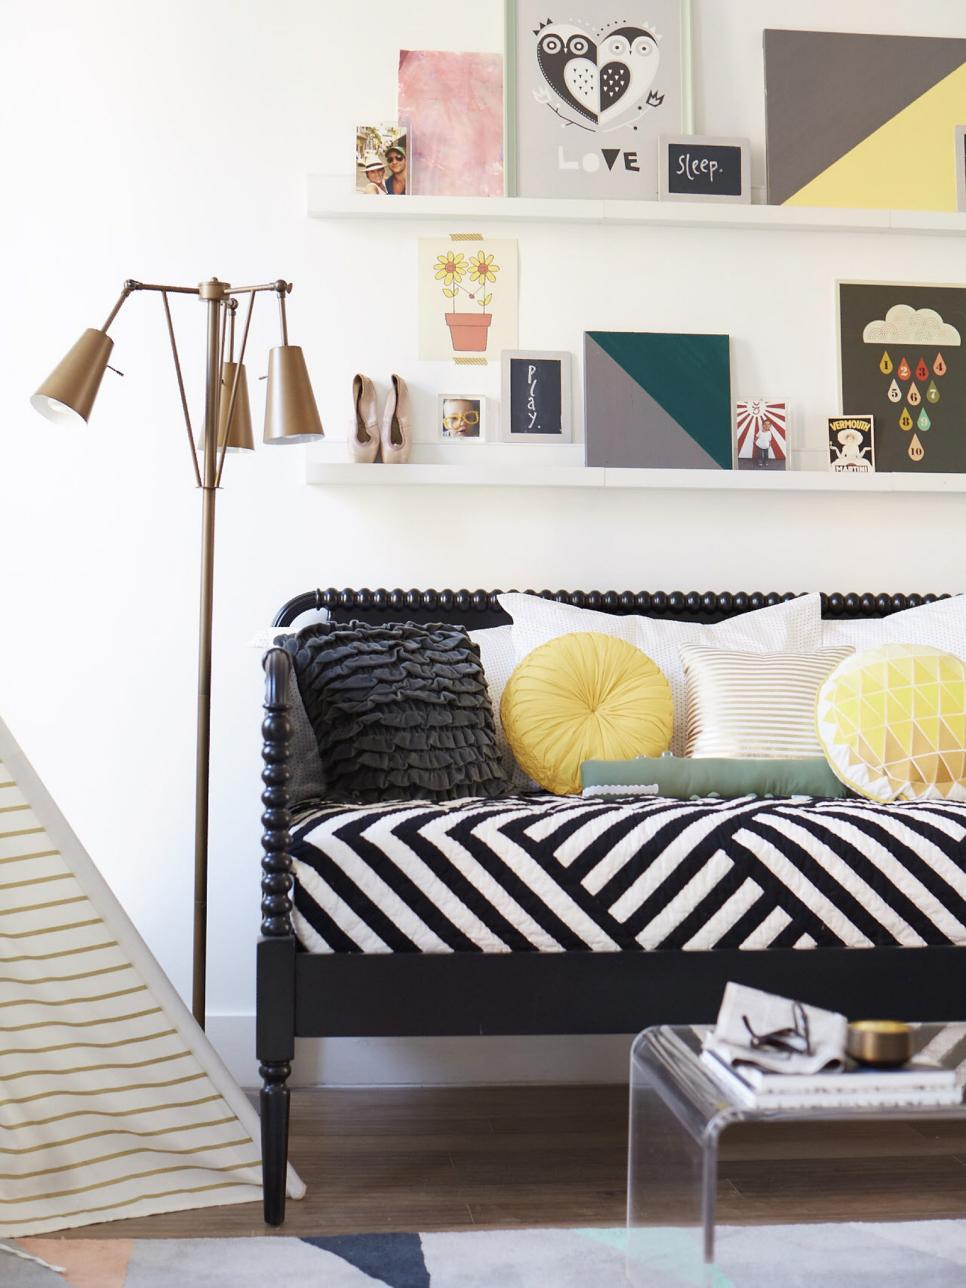 Small Living Rooms Decorating Hgtv: Small Space Decorating Don'ts